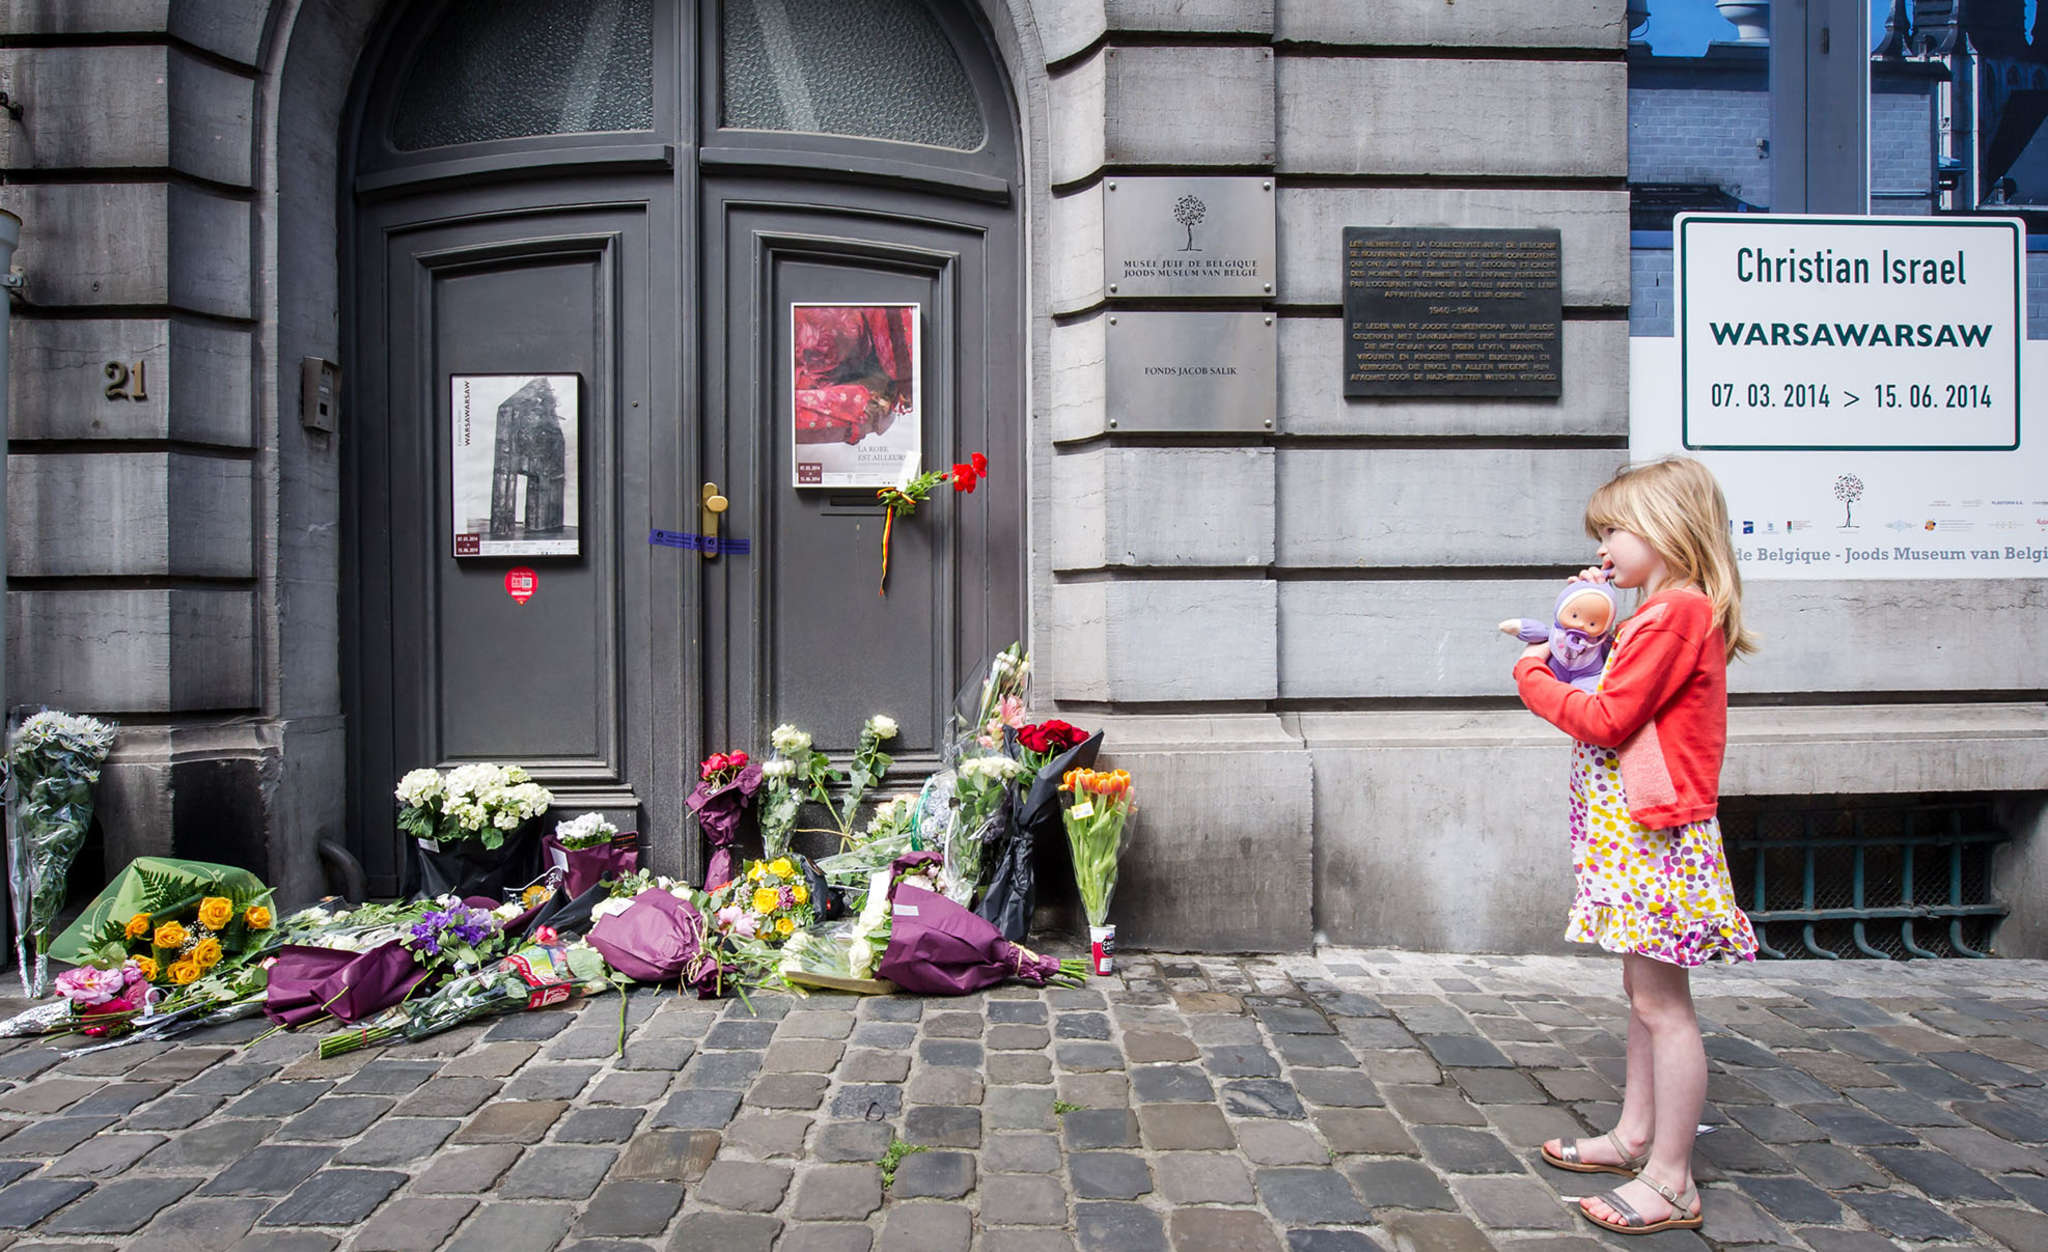 A 2014 attack that killed four at the Brussels Jewish Museum was the impetus for the Rutgers project.